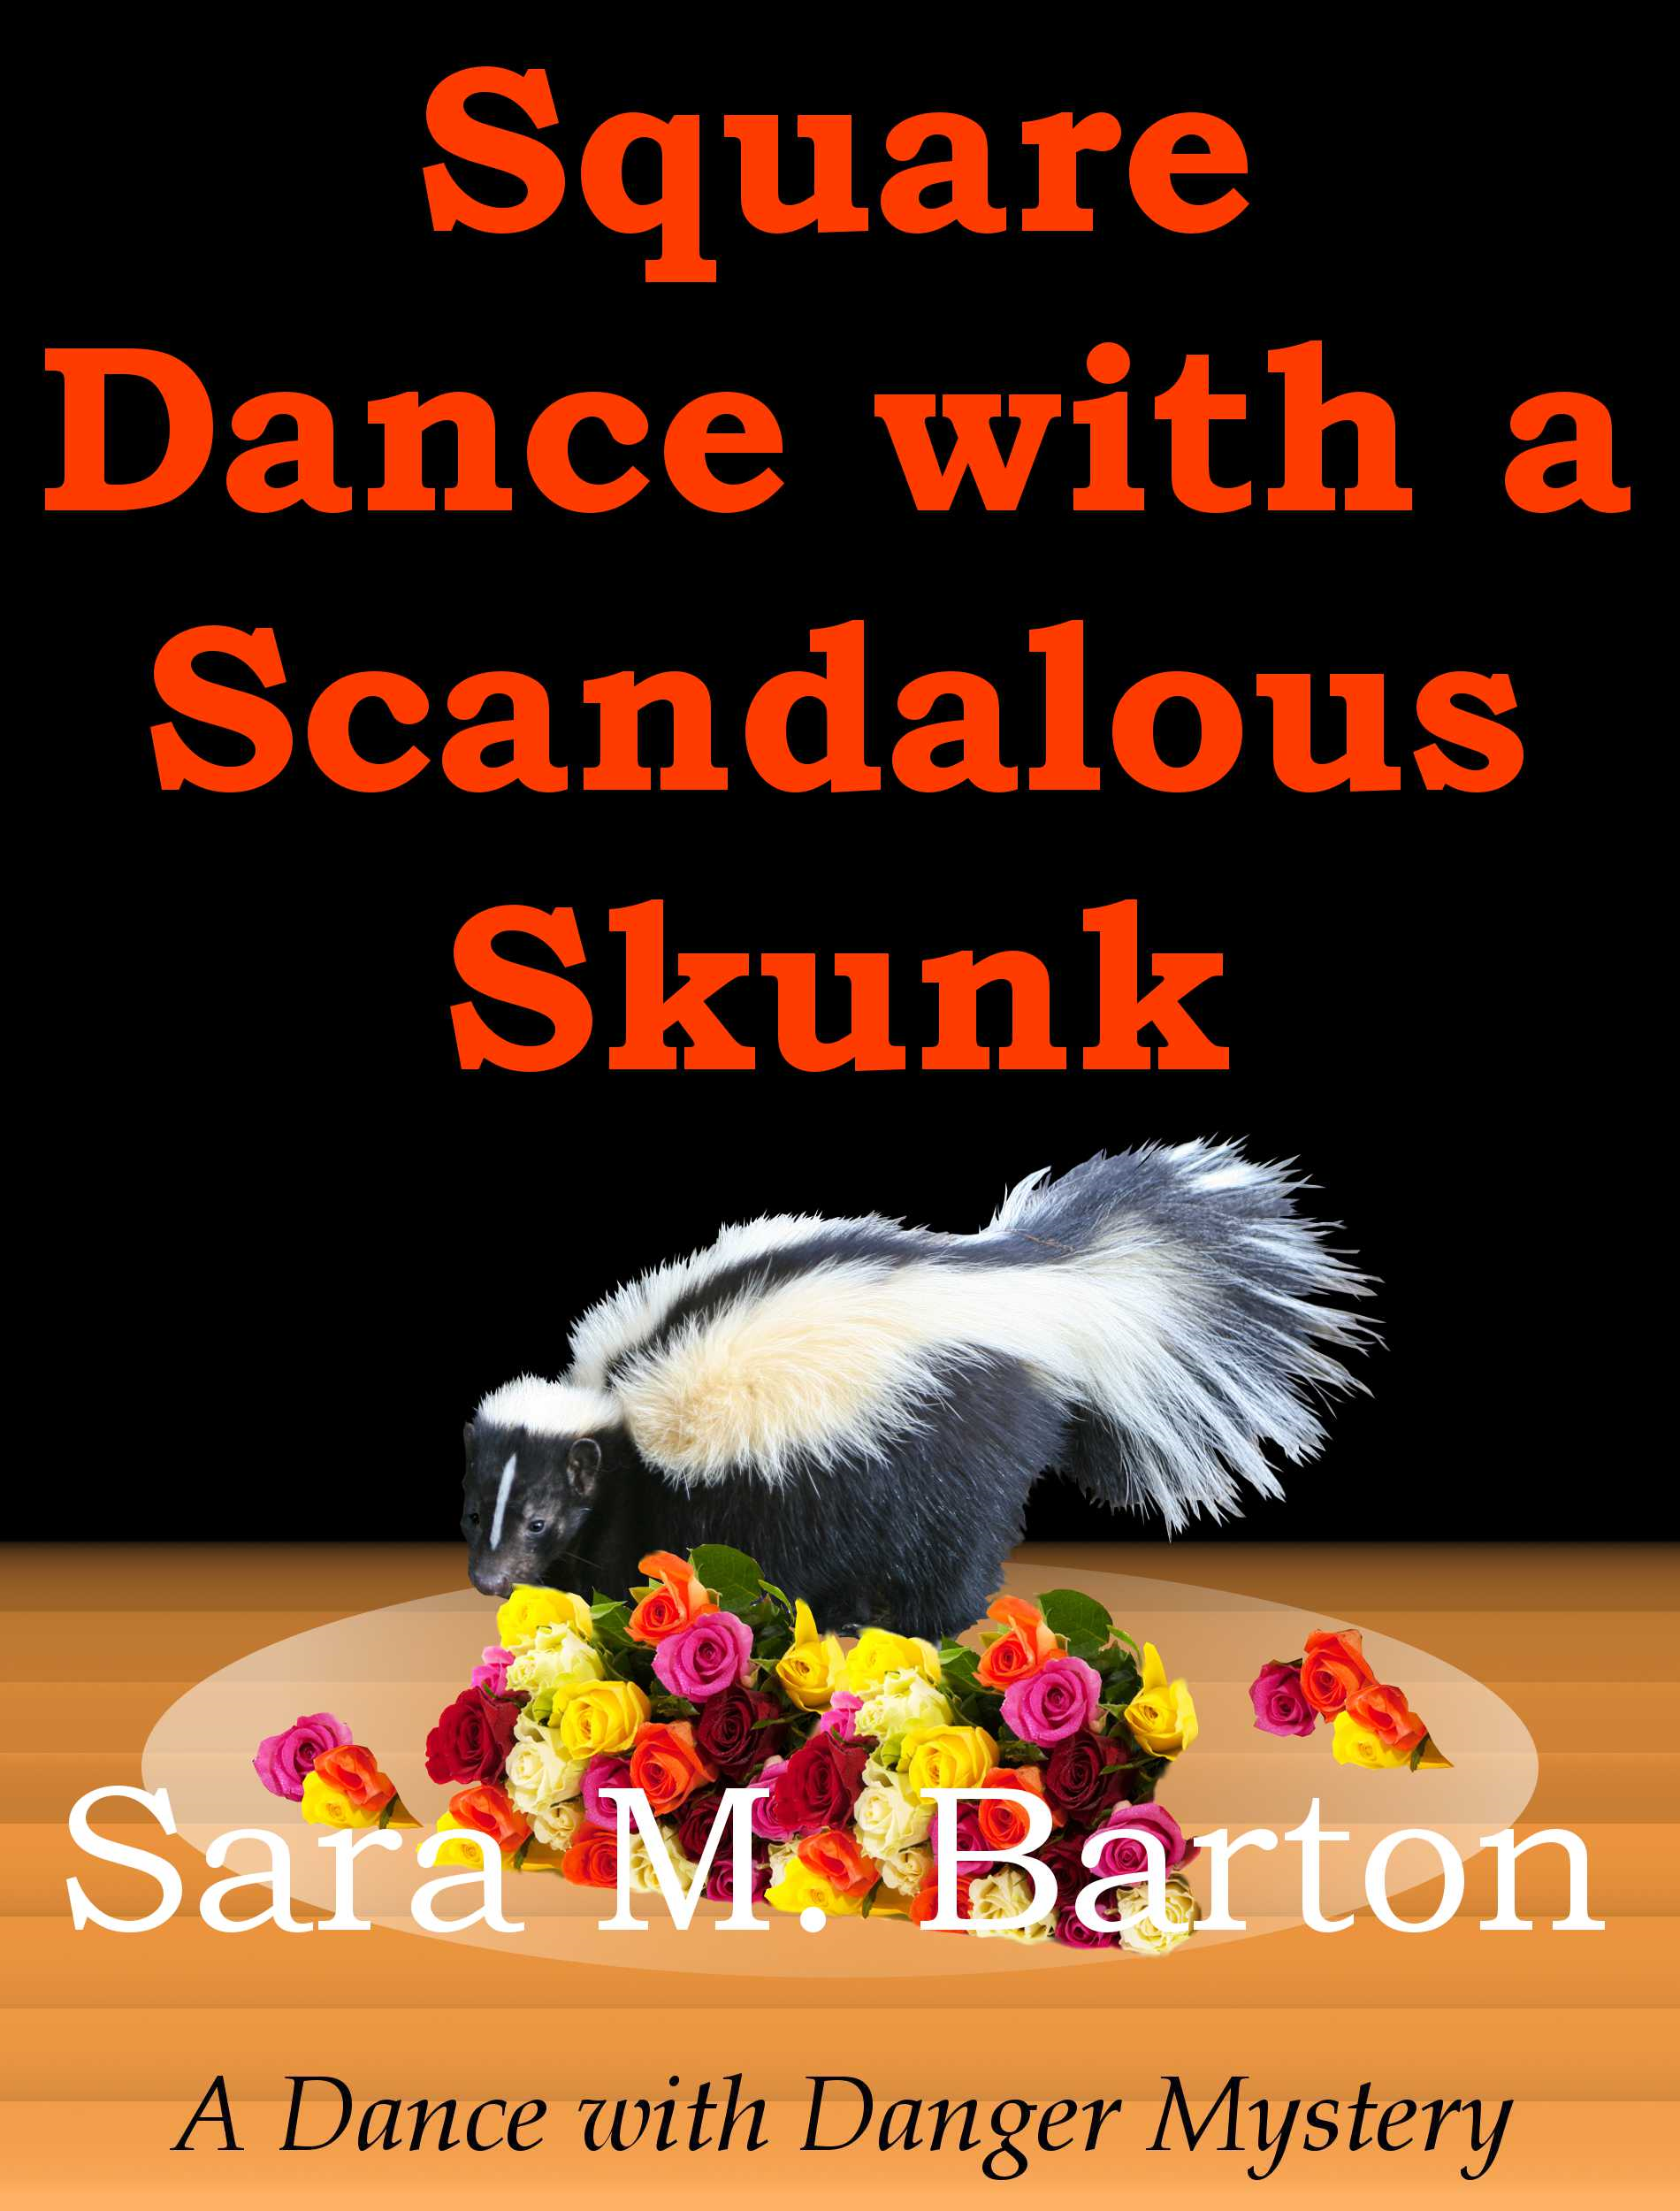 Square Dance with a Scandalous Skunk